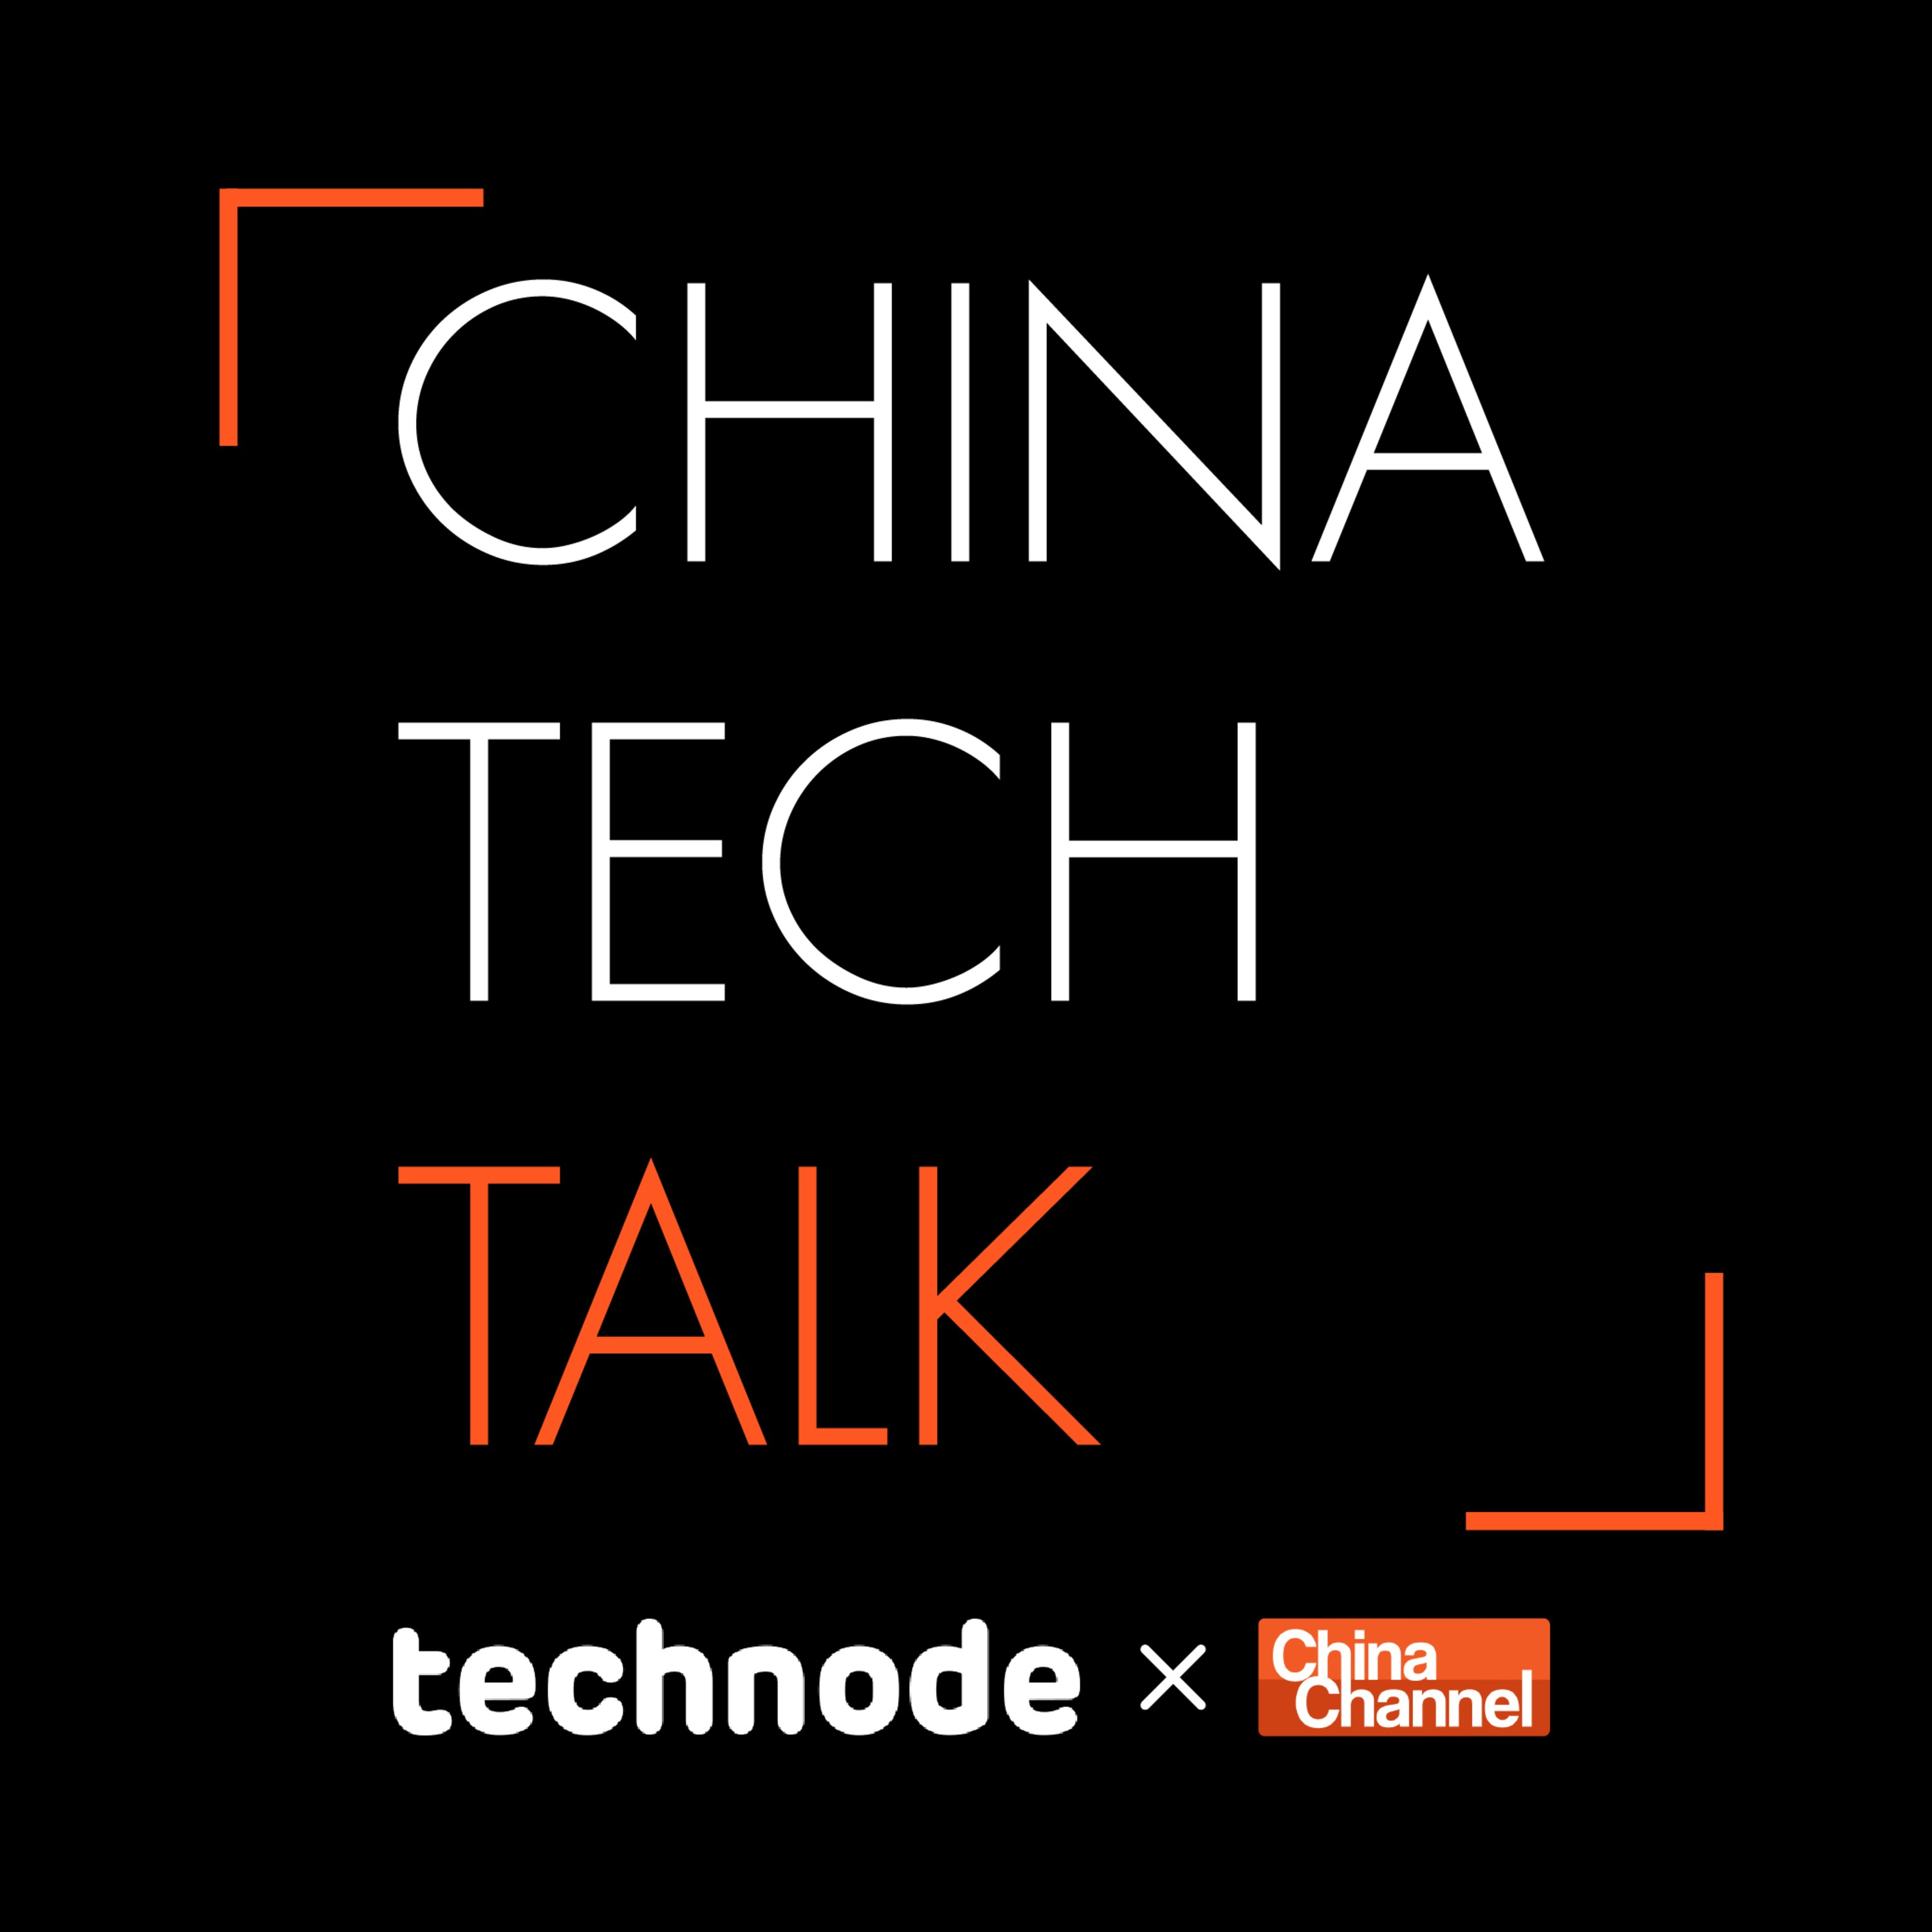 80: Libra lessons from WeChat and QQ